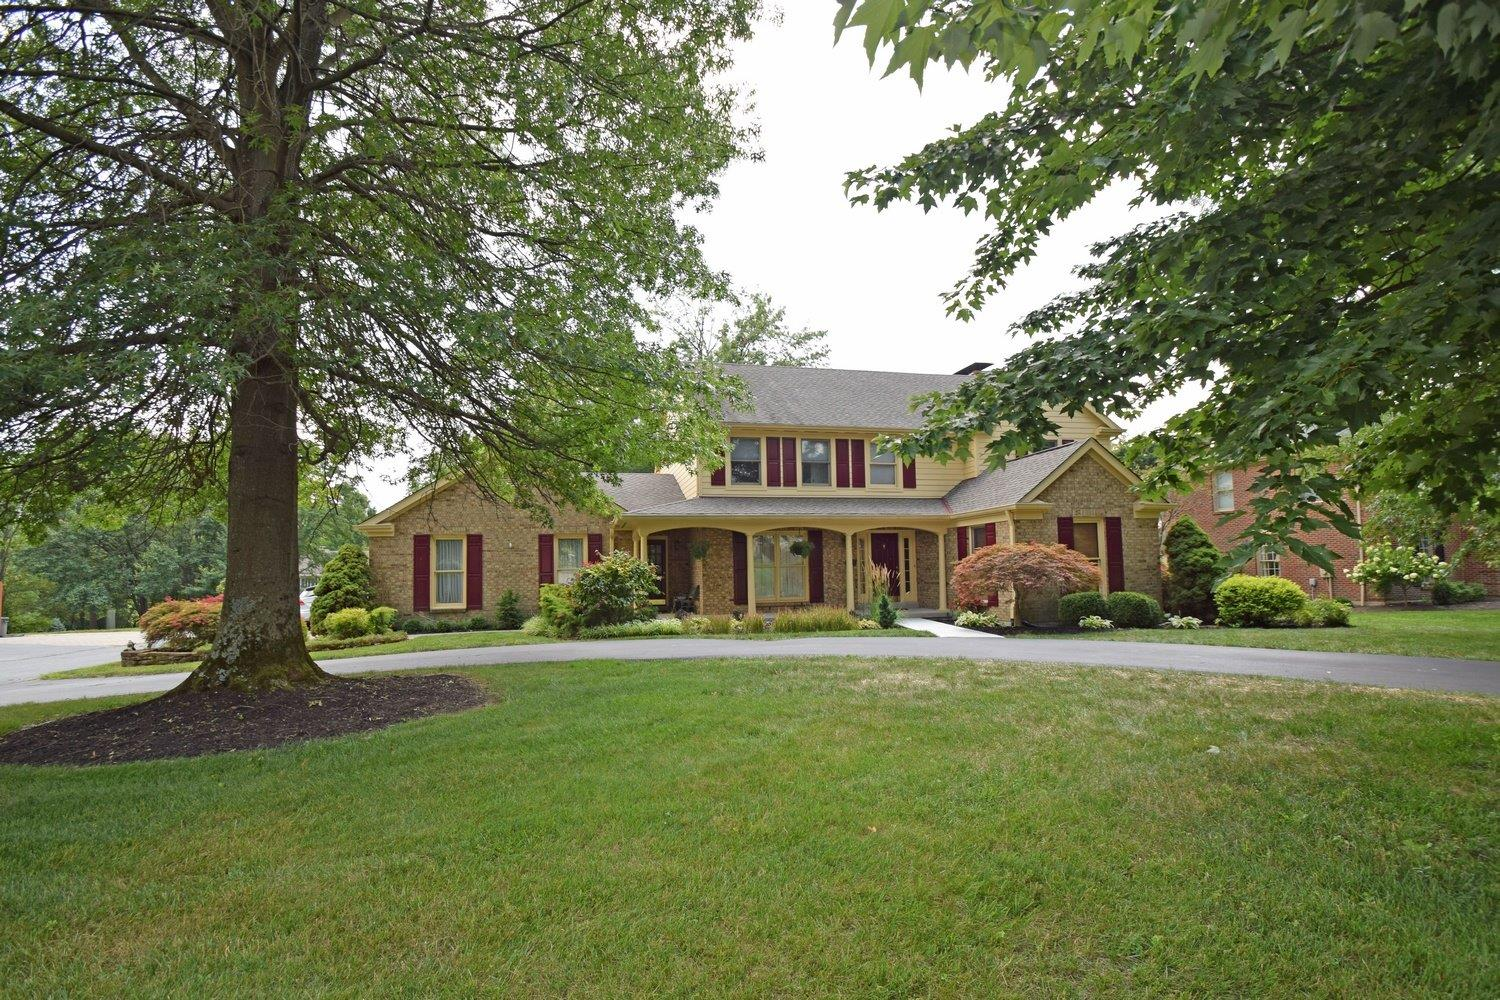 7285 Woodcroft Drive, Anderson Twp, OH 45230